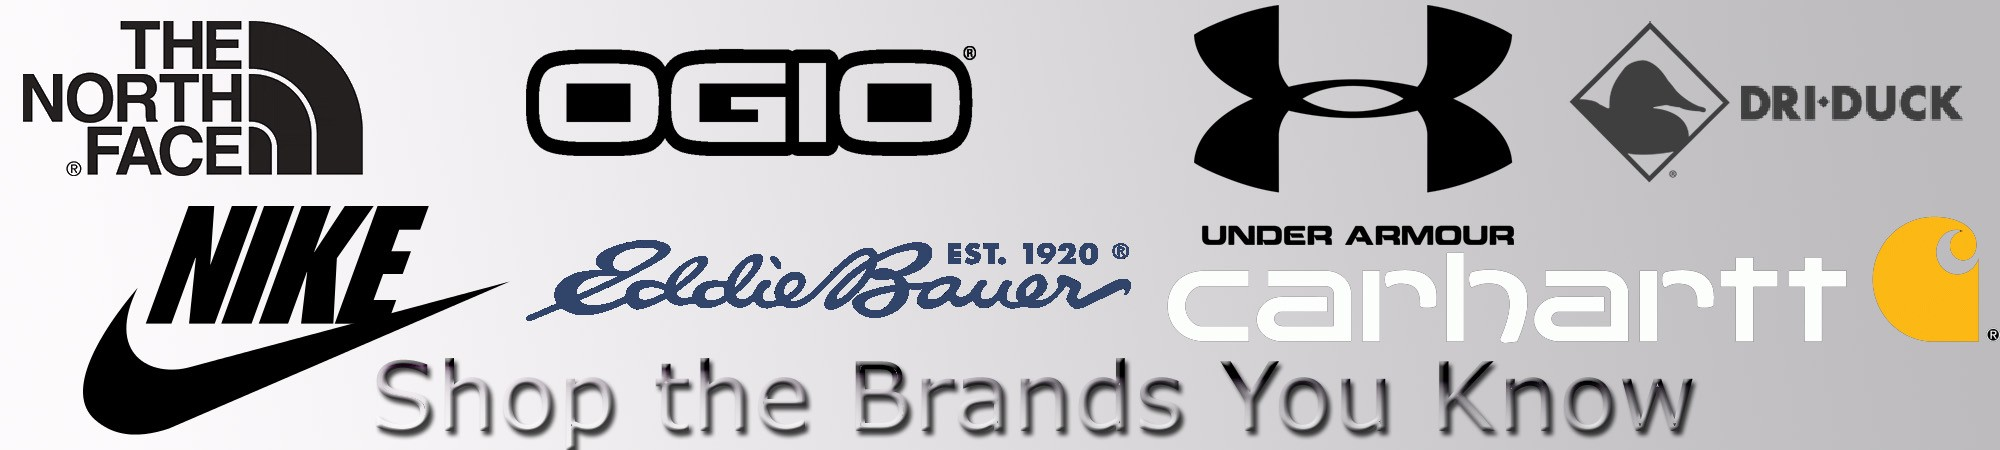 Shop the Brands You Know